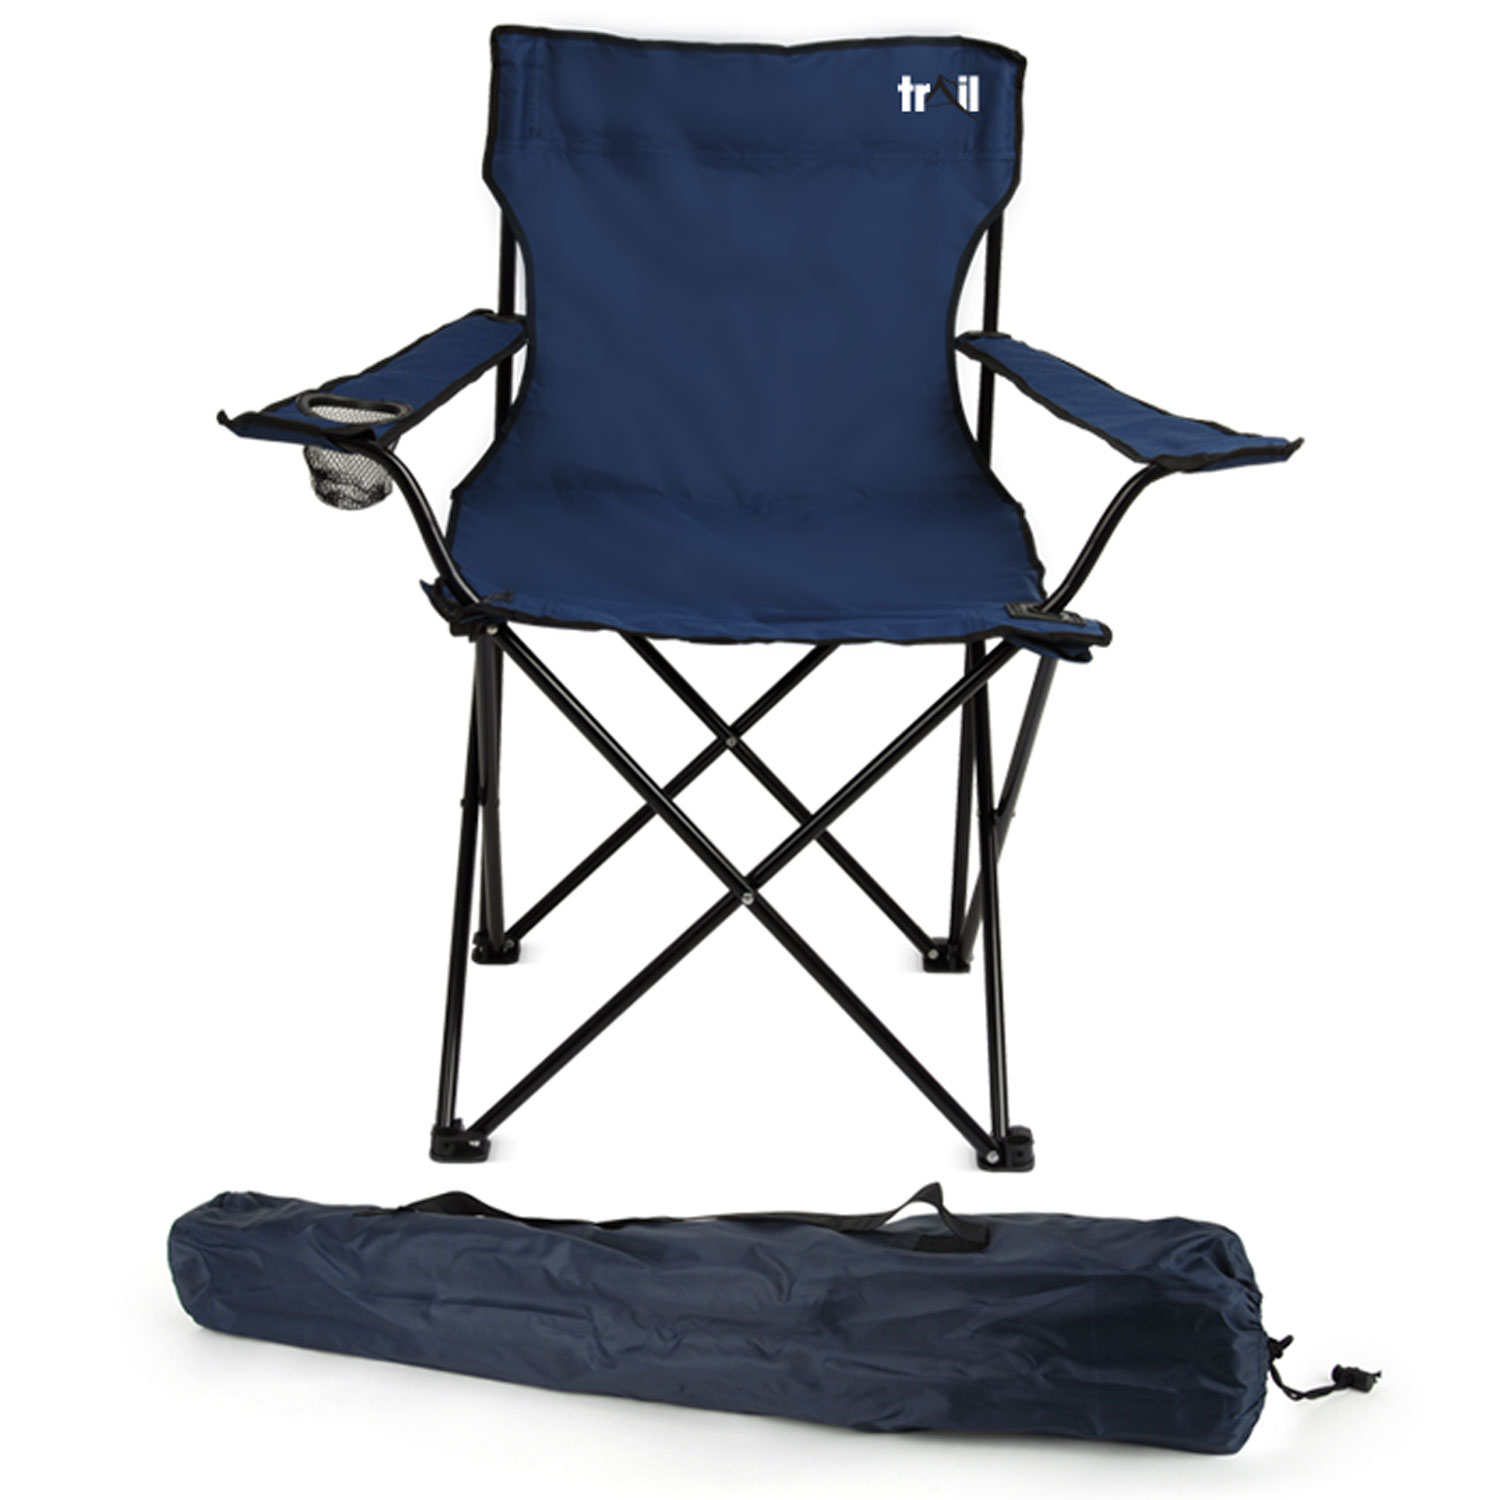 fishing chair ebay bistro dining cushions folding foldable camping beach fold up camp festival